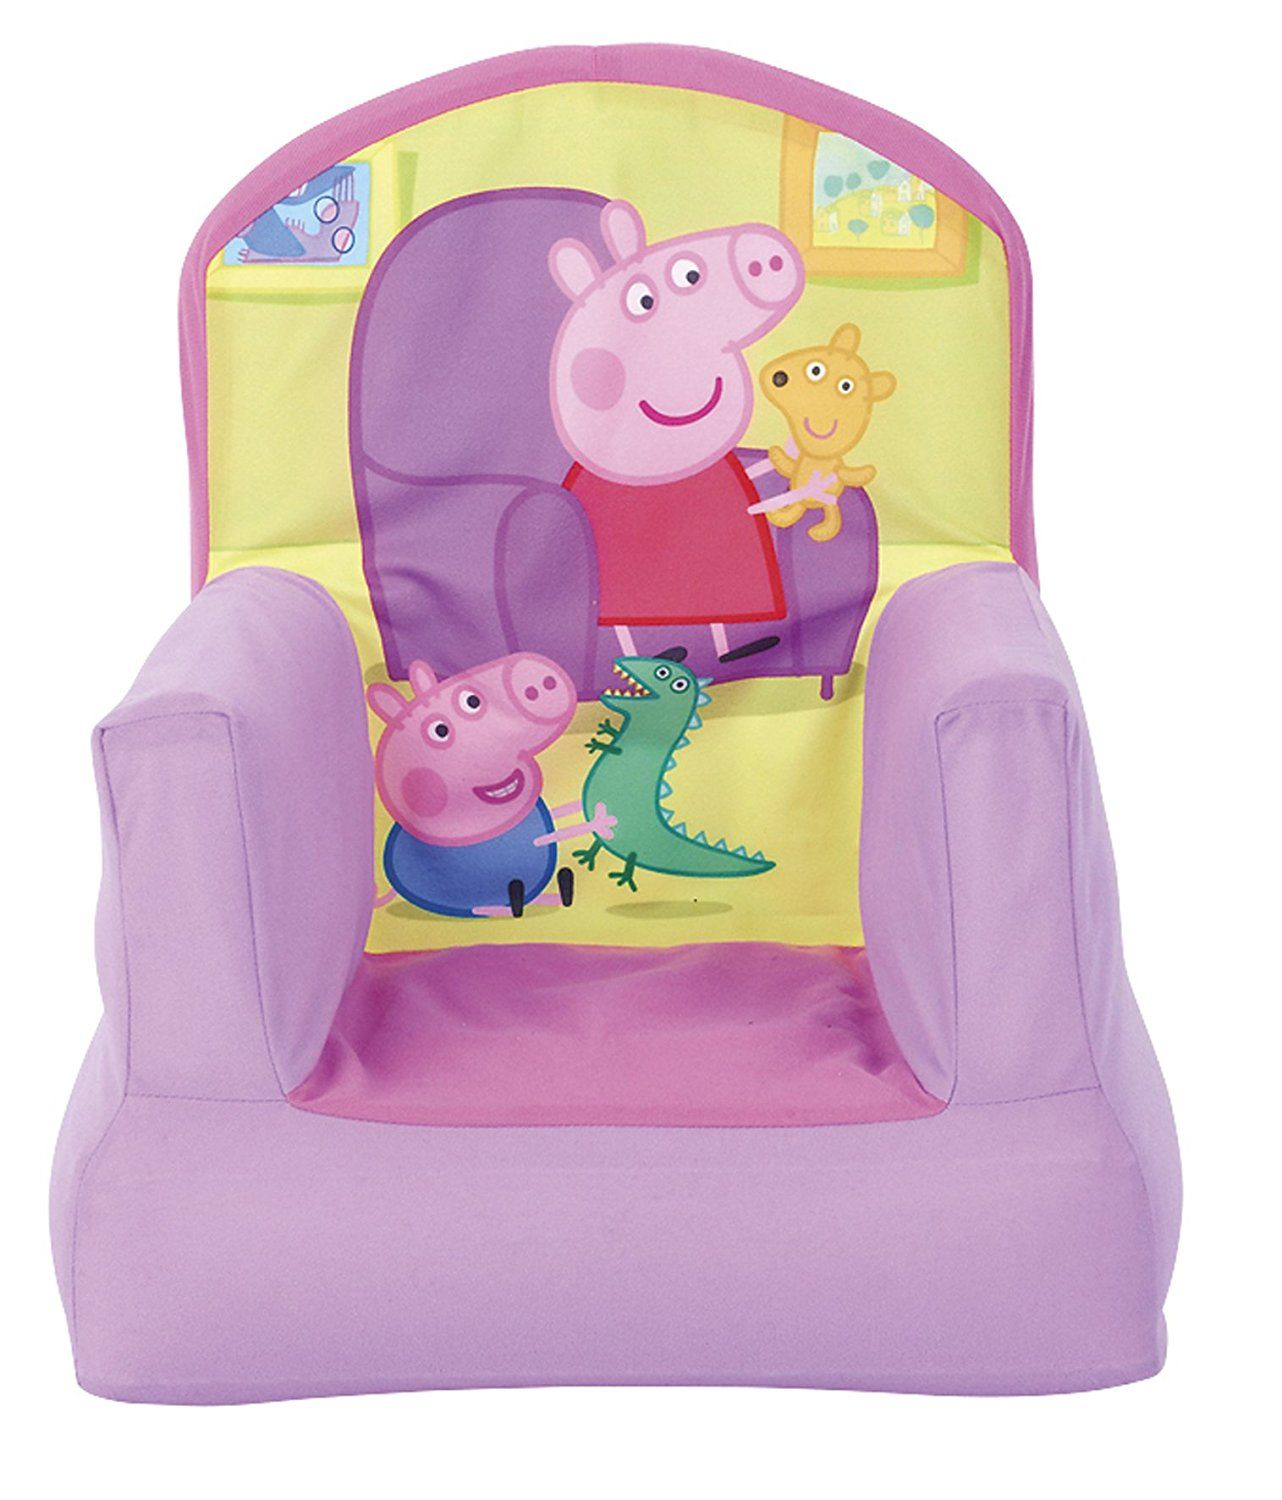 peppa pig Cosy Chair Don't get left behind, see this